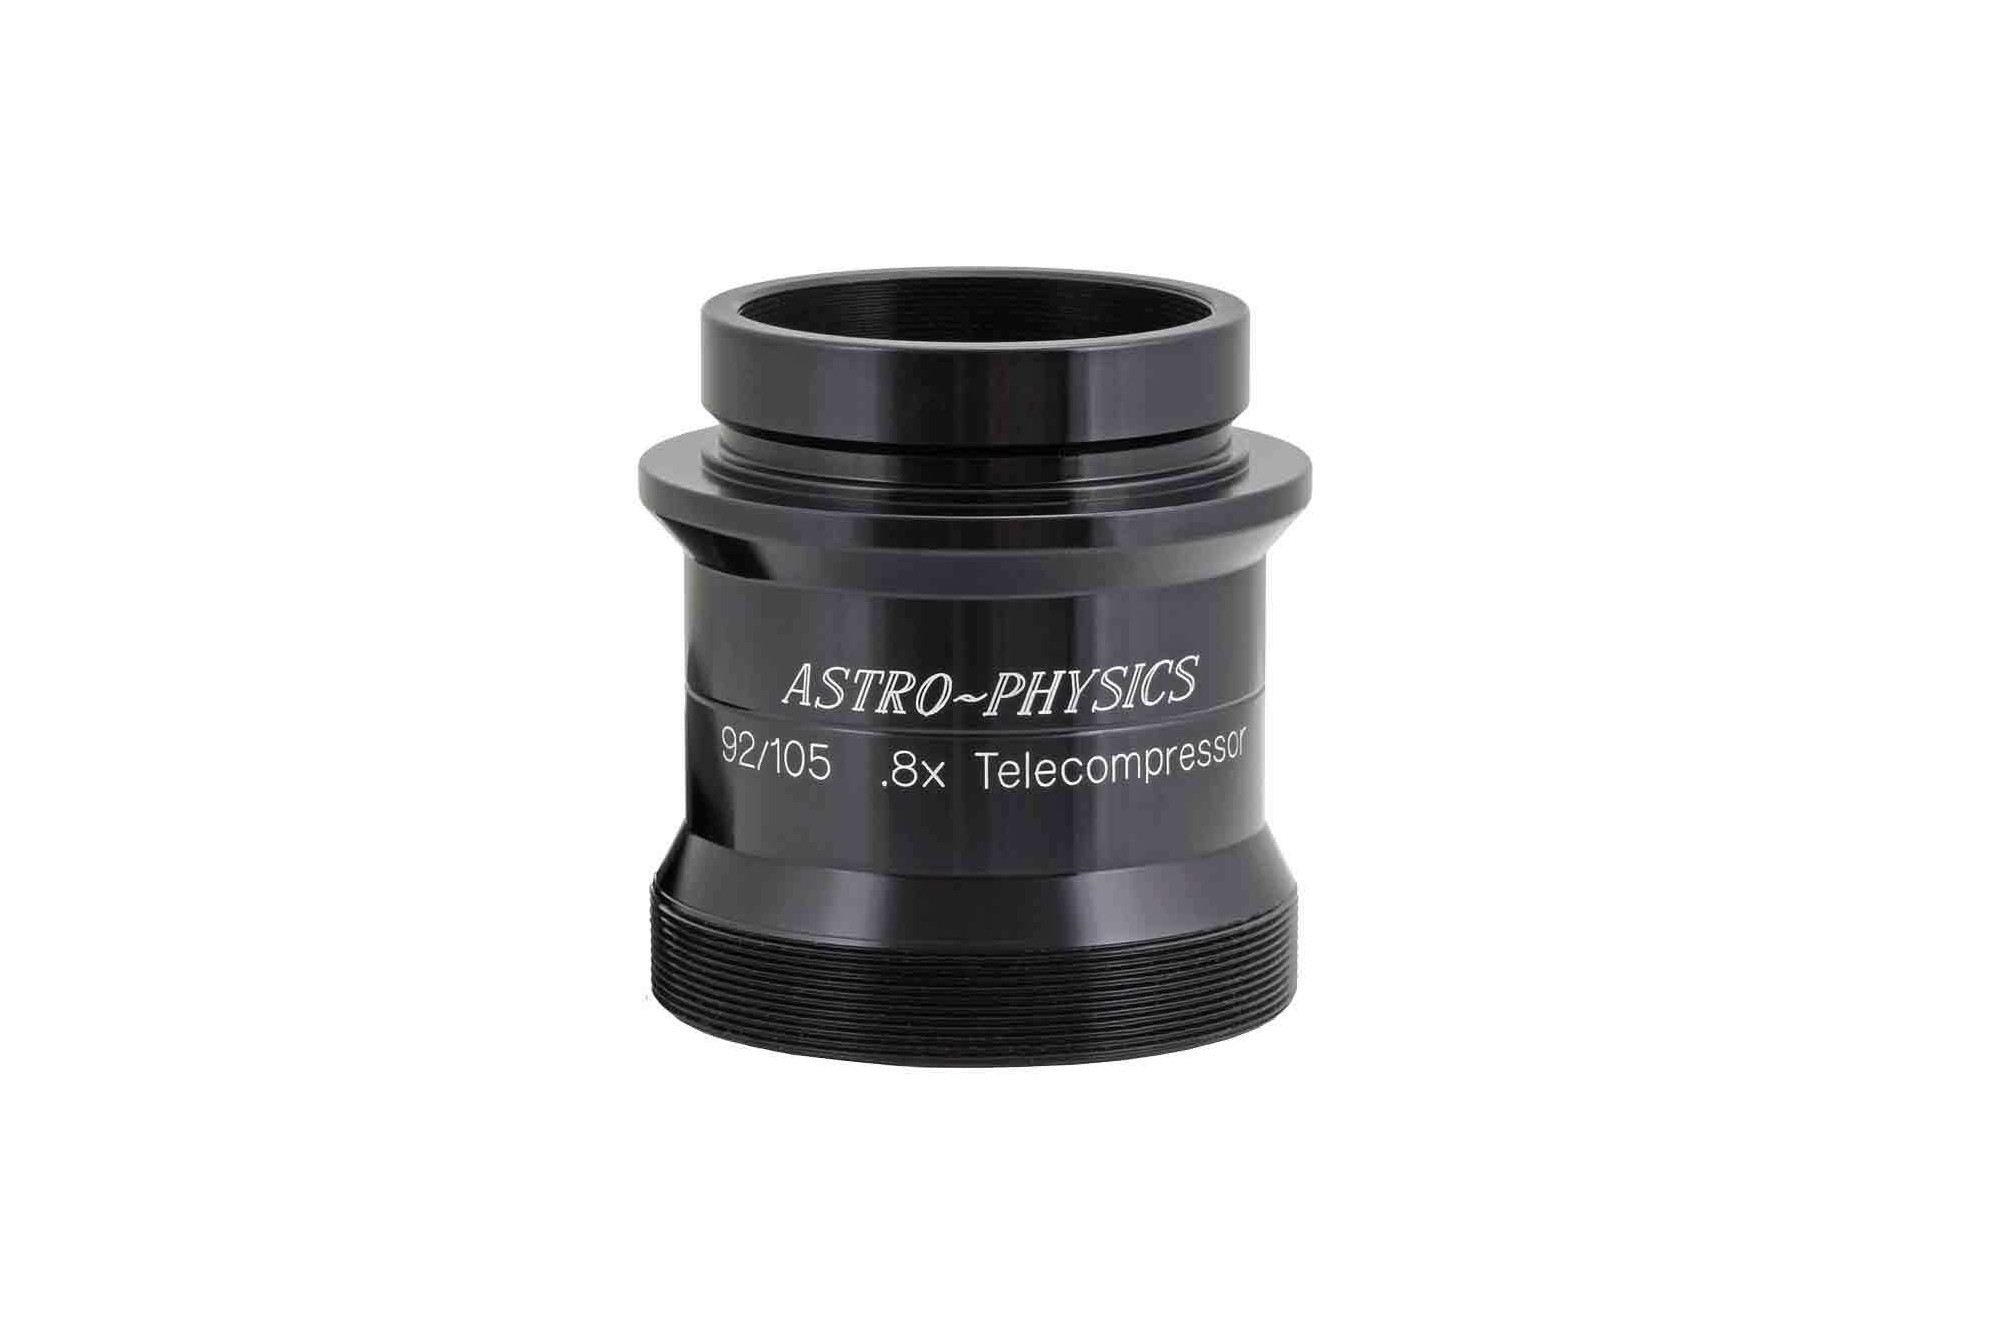 Astro-Physics 0.8x CCD Telecompressor for 92mm f/6.65 Stowaway